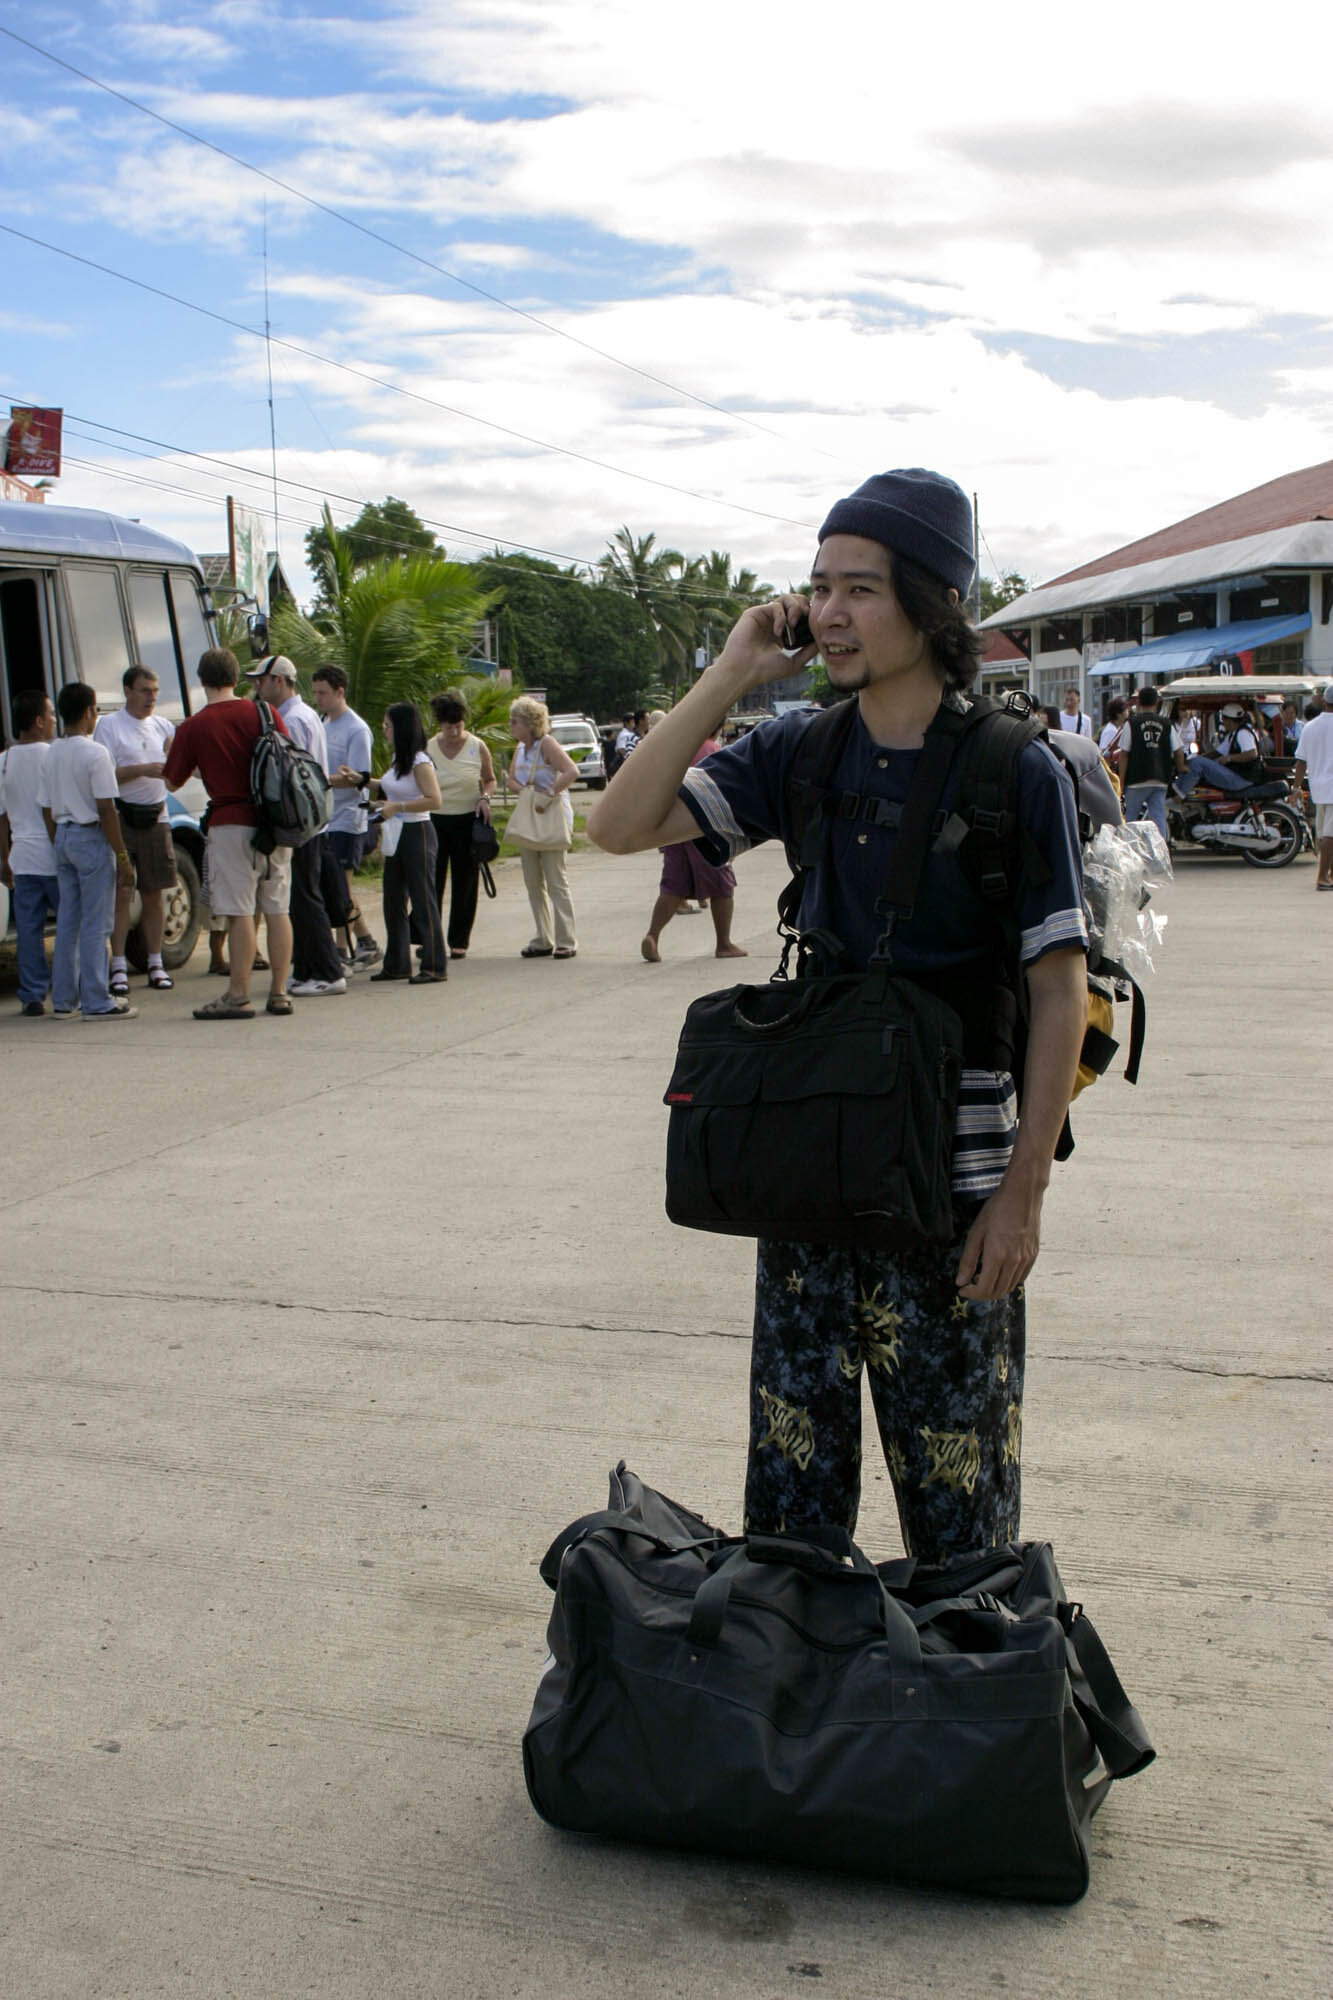 2003, Caticlan Airport. The husband trying to figure out how to get to our resort because his contact forgot to have us picked up. Google Maps, Siri, etc. weren't a thing back then, but thank God for mobile phones!